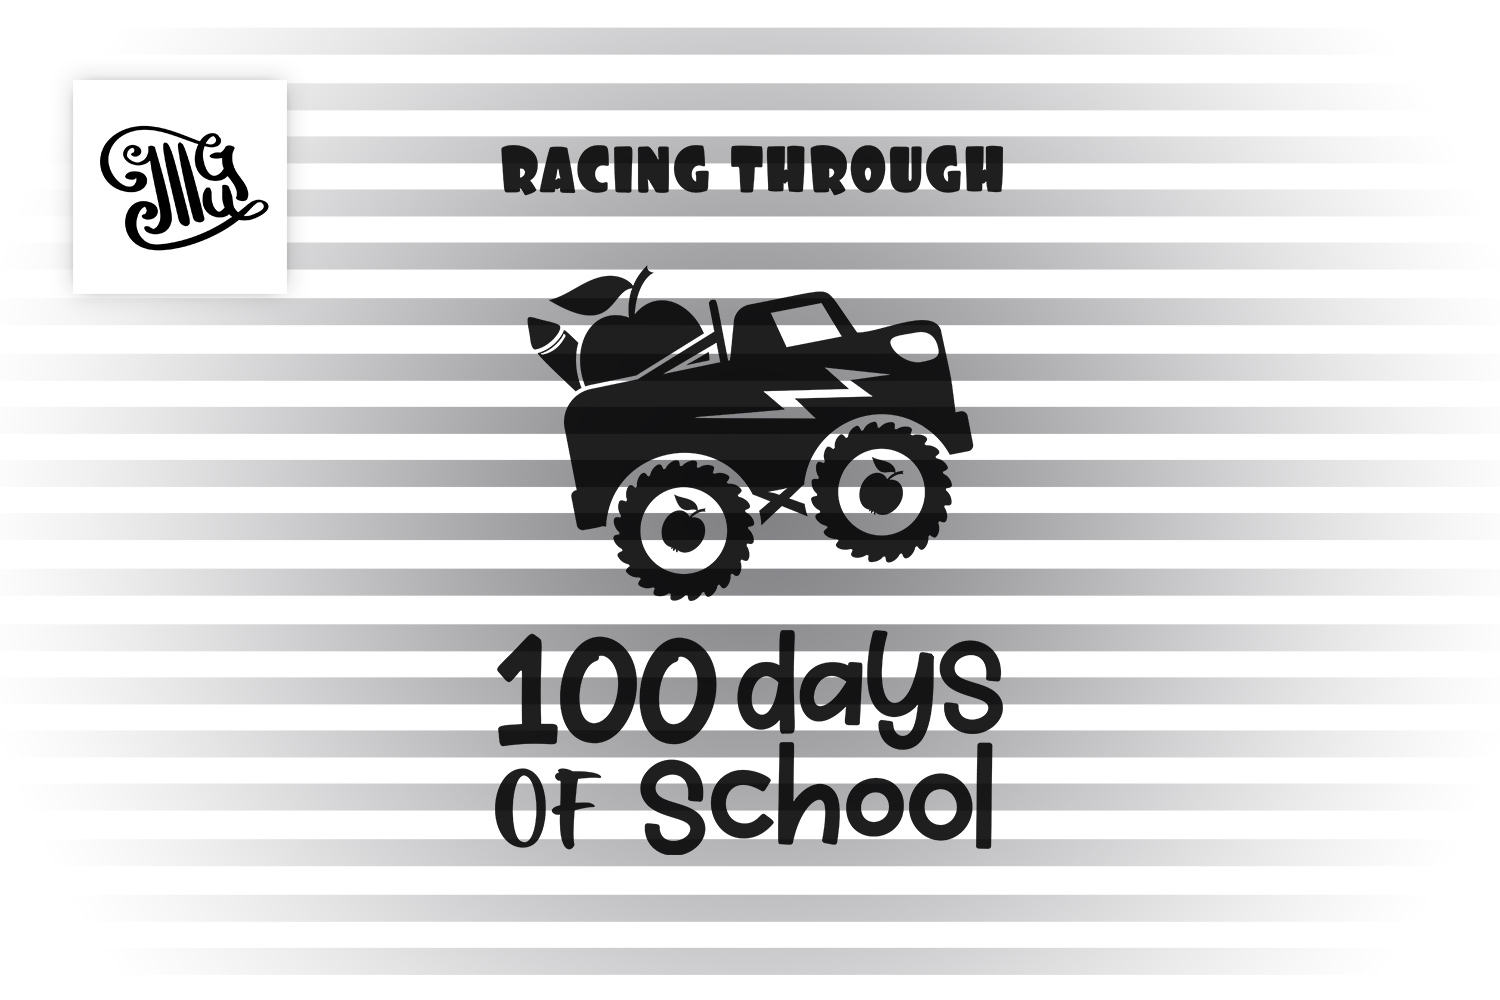 Racing through 100 days of school svg example image 2